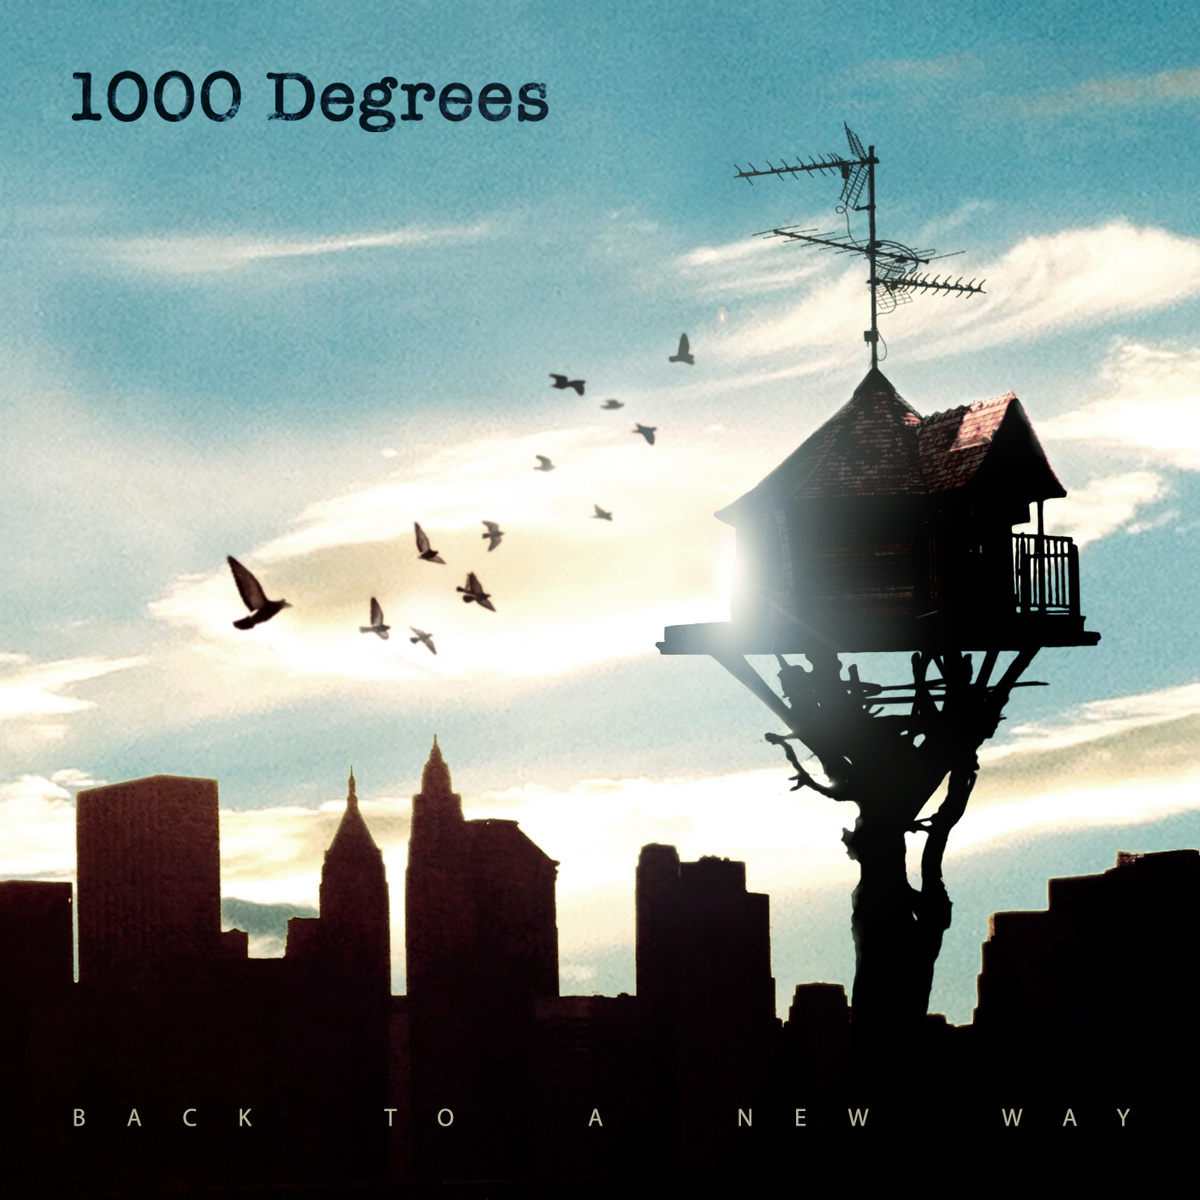 1000 DEGRESS: Back to a new way